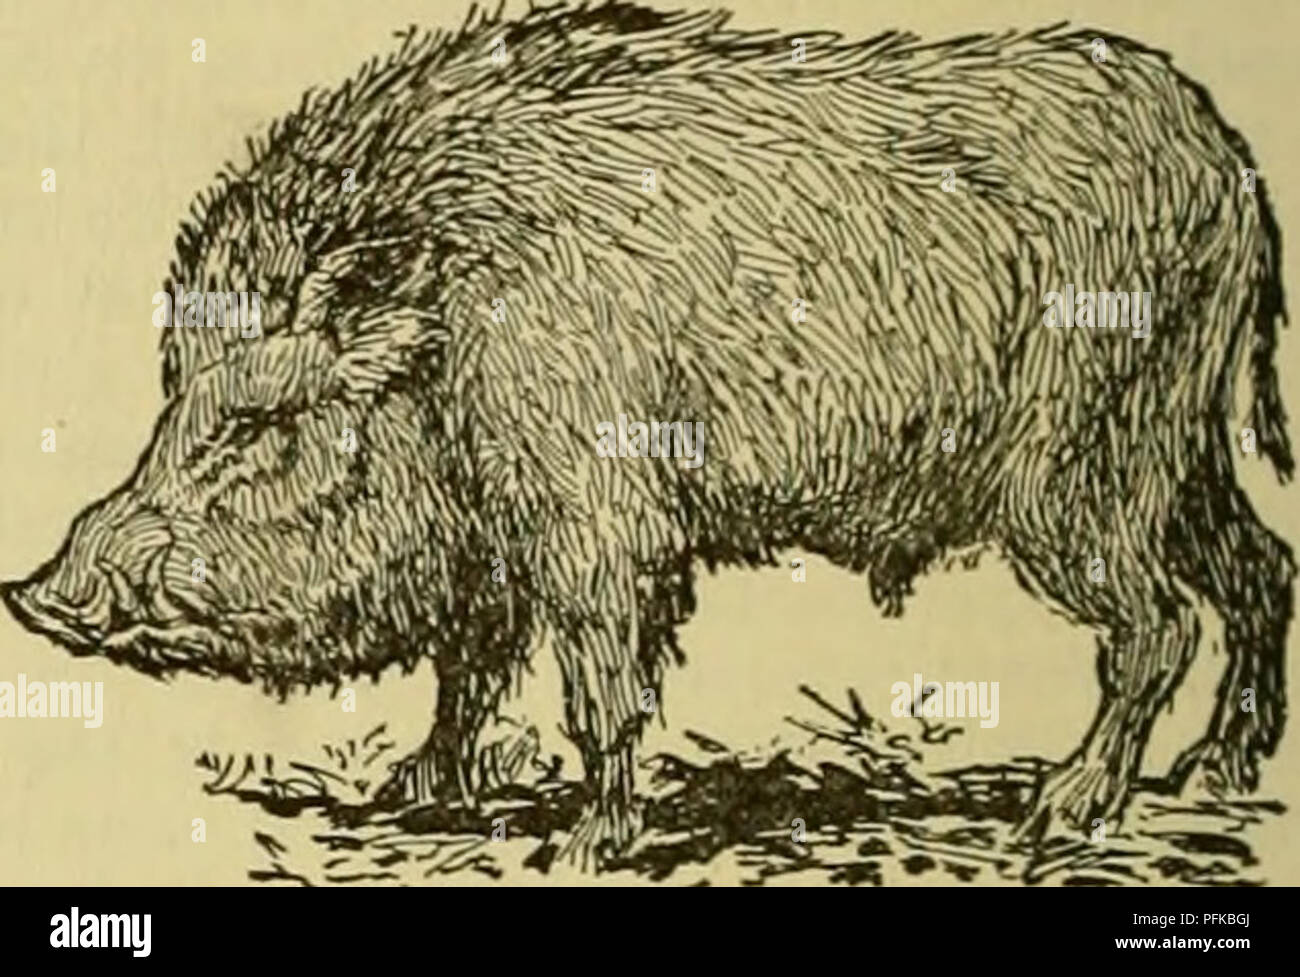 . Cyclopedia of farm animals. Domestic animals; Animal products. 646 SWINE SWINE 1902 1905 $12,162,953 240,840 54,070 22,186 $12,194,458 321,501 188,194 110,540 Pork Literature. The following books may be consulted for addi- tional information on swine: F. D. Cobourn, Swine Husbandry, New York (1888); John Coleman, Cat- tle, Sheep and Pigs of Great Britain, London (1887); John A. Craig, Judging Live-Stock, College Station, Texas (1904); George W. Curtis, Horses, Cattle, Sheep and Swine, College Station, Texas (1888); George E. Day, Swine, Agricultural College, Guelph, Canada (1905); Joseph Har - Stock Image